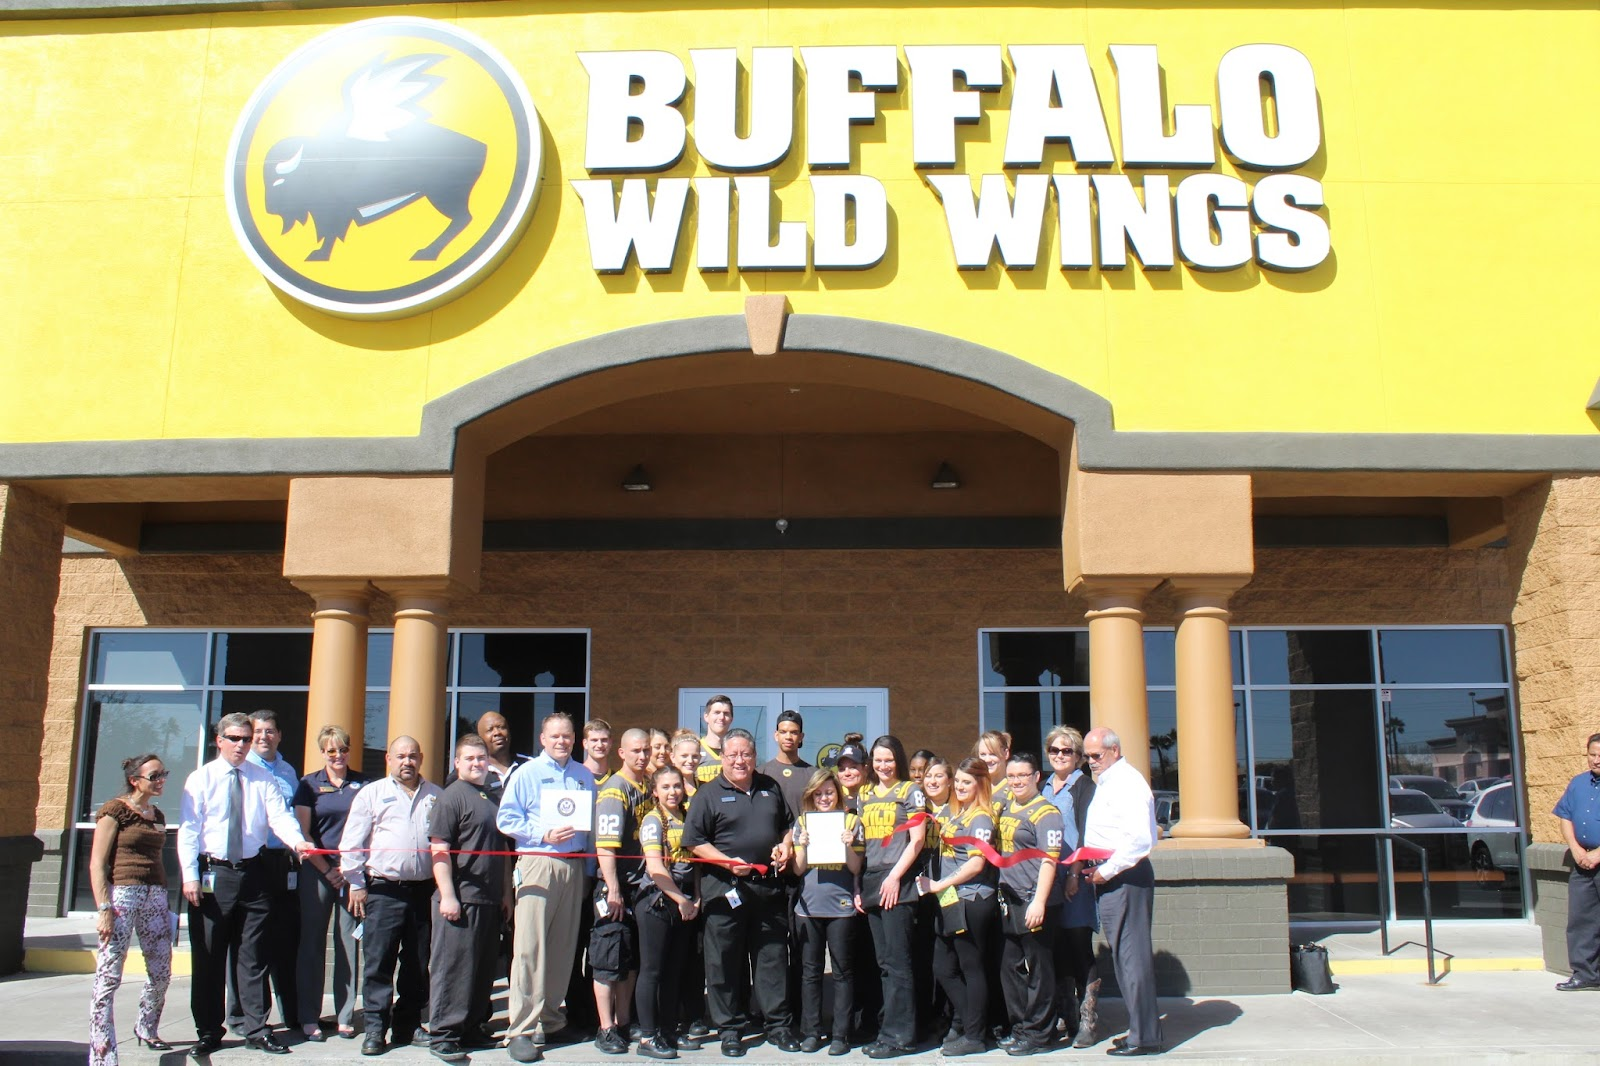 Congratulations to Buffalo Wild Wings, located at 68 N. Harrison Road, on their Grand Re-Opening. Buffalo Wild Wings of East Tucson has a brand new look! Stop by to see this awesome, newly renovated restaurant. New look, same great wings, beer, sports and service!